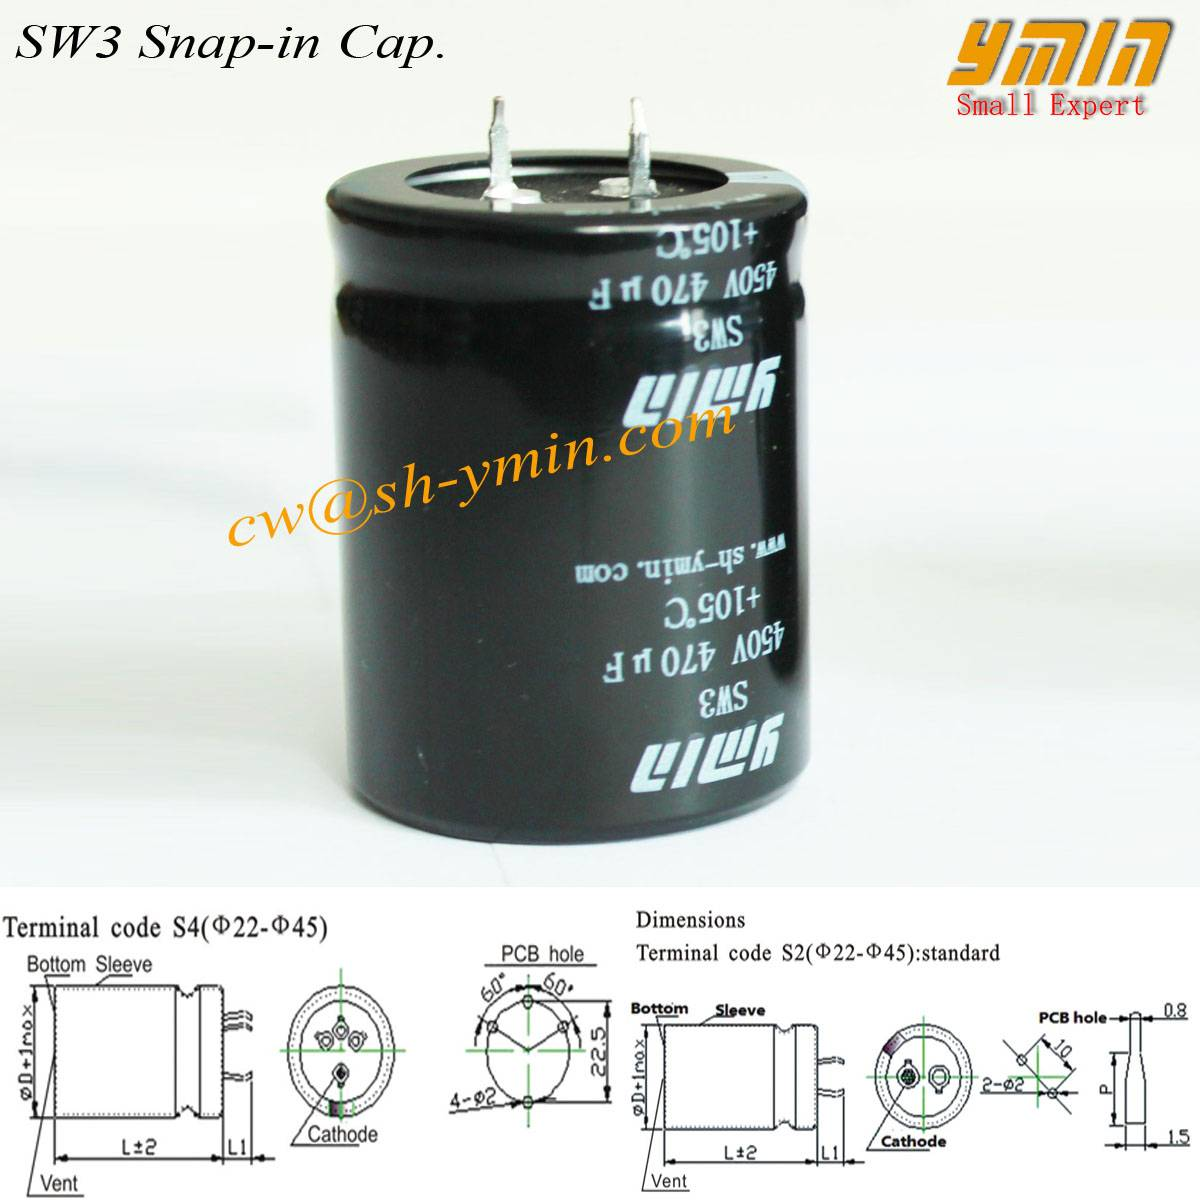 Snap in Electrolytic Capacitor for Heat Pump and Refrigerator